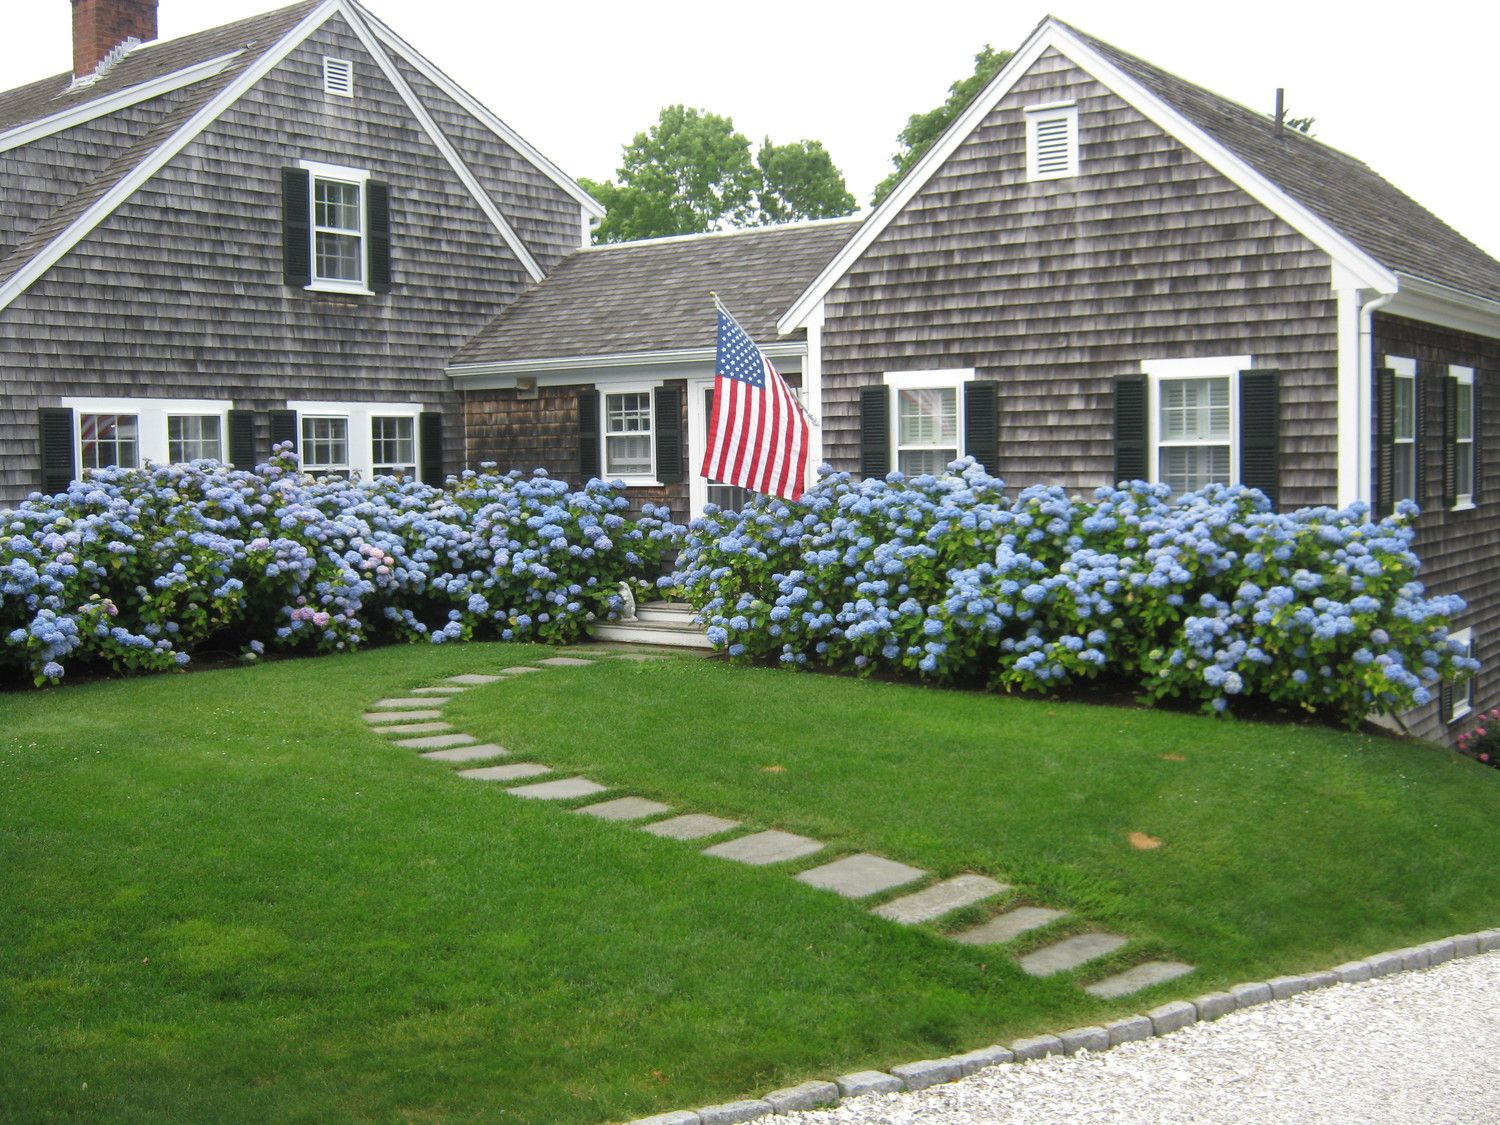 Cape Cod Landscaping With Care Cape Cod Ma Landscape Cape Cod